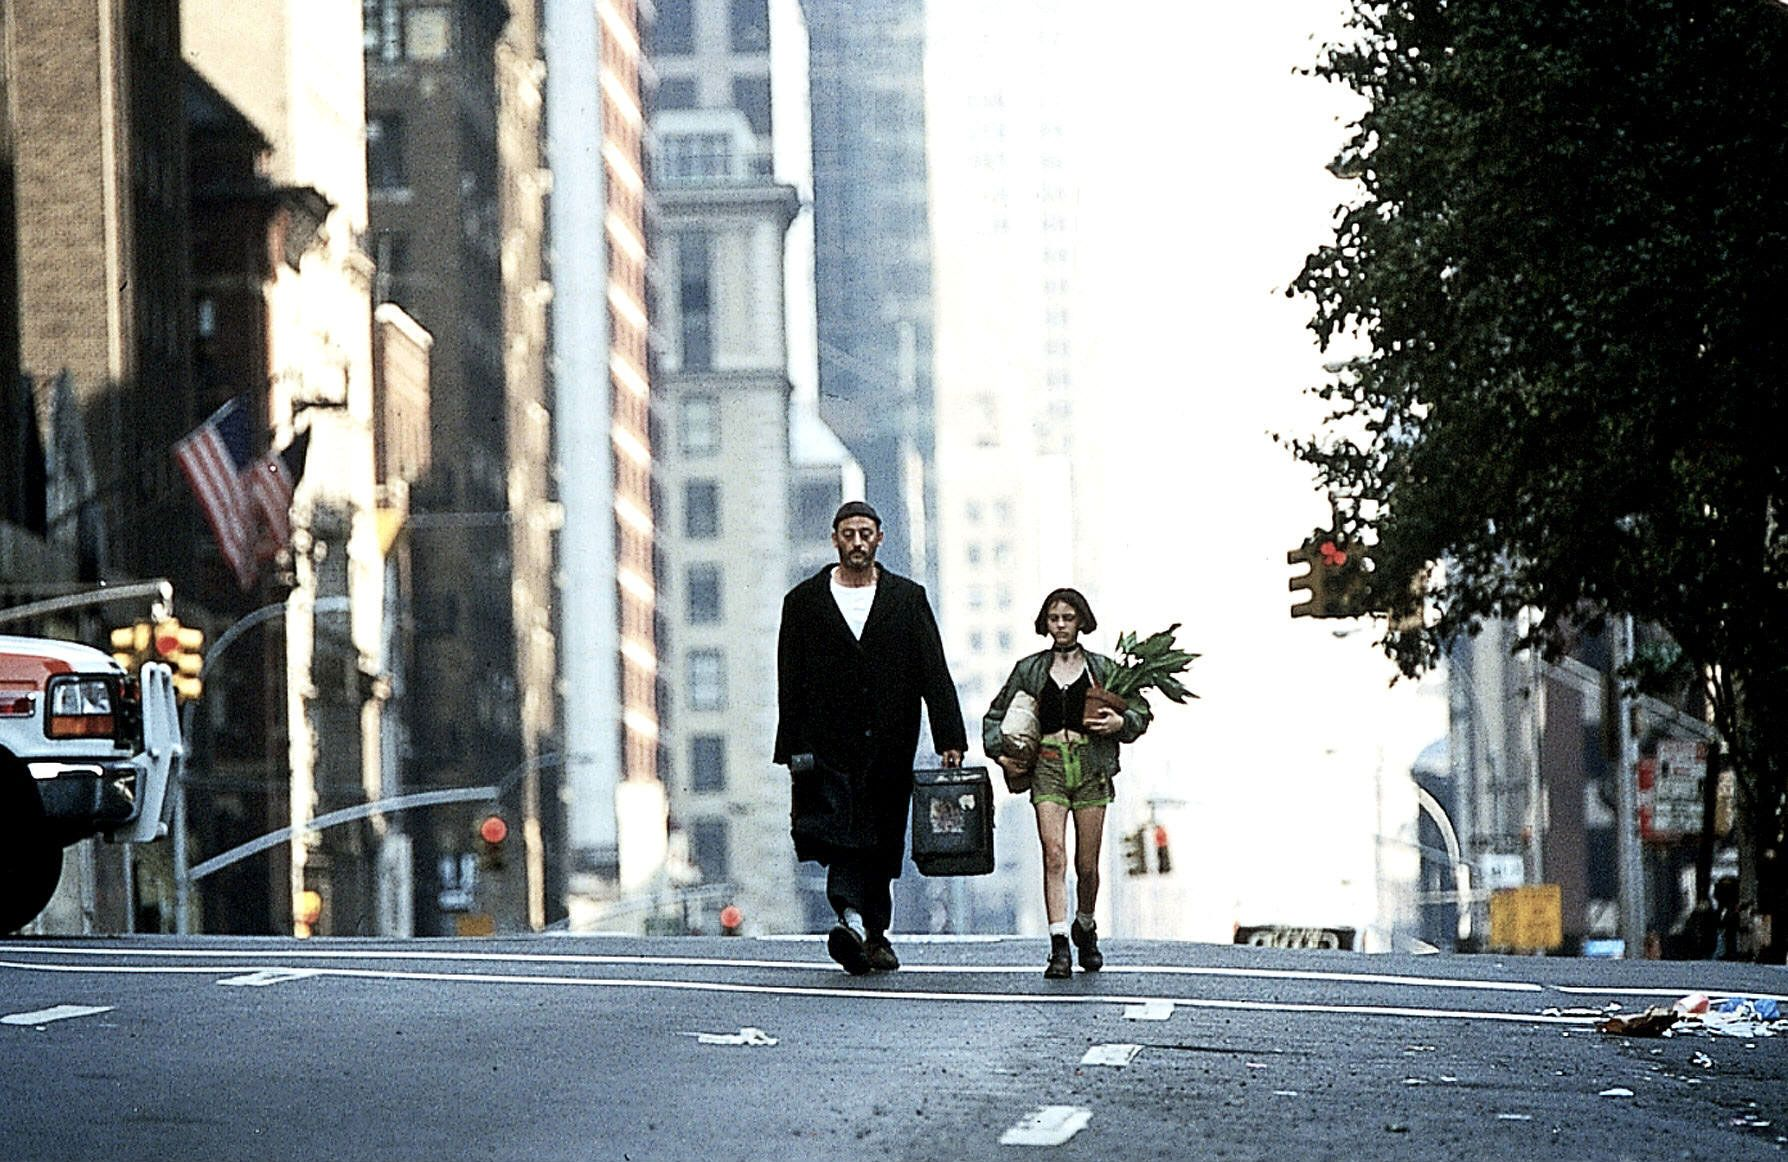 Leon The Professional Wallpapers Top Free Leon The Professional Backgrounds Wallpaperaccess